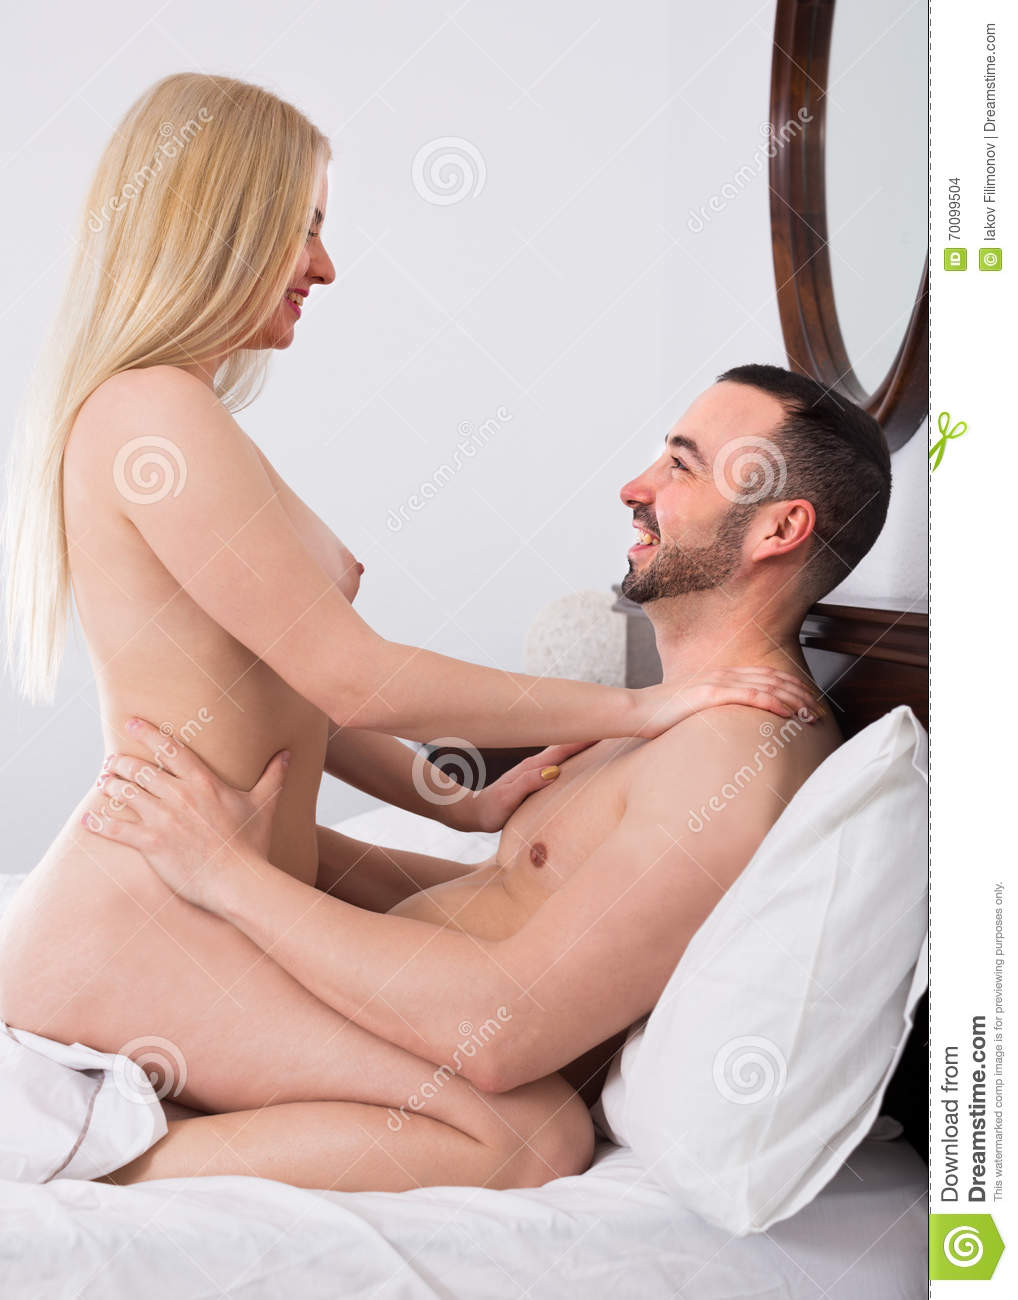 Remarkable, useful Naked sex with couple consider